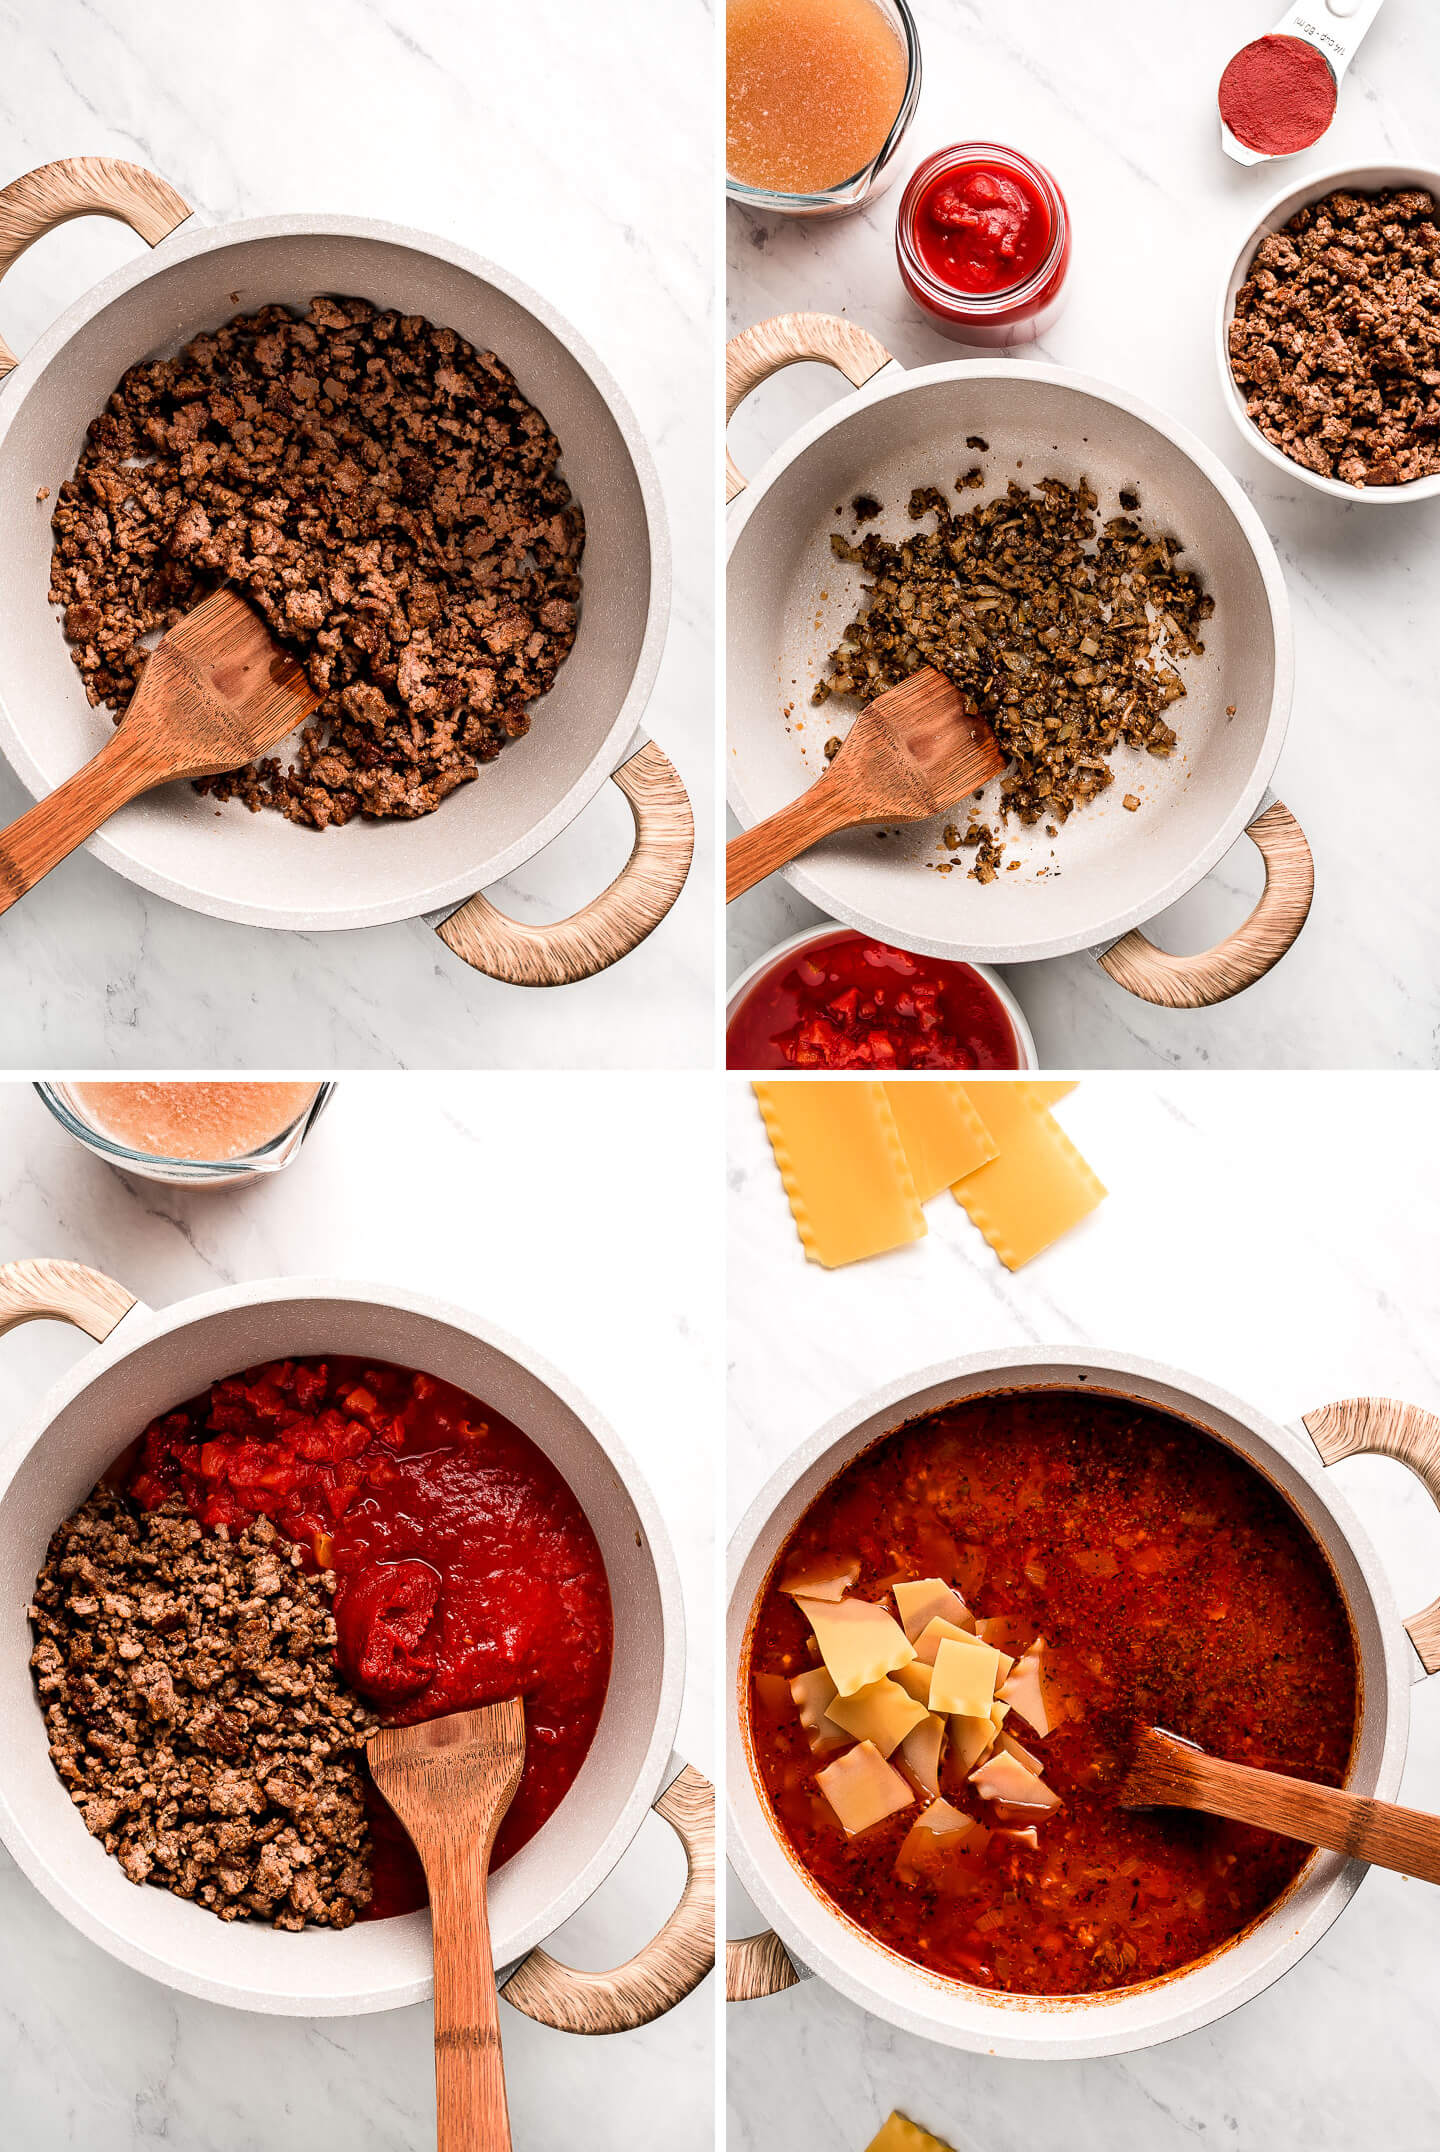 4 photos: browned ground beef in a pot; cooked onions, garlic, and seasonings in a pot; ground beef, tomato sauce and tomatoes in a pot; tomato soup with noodles.